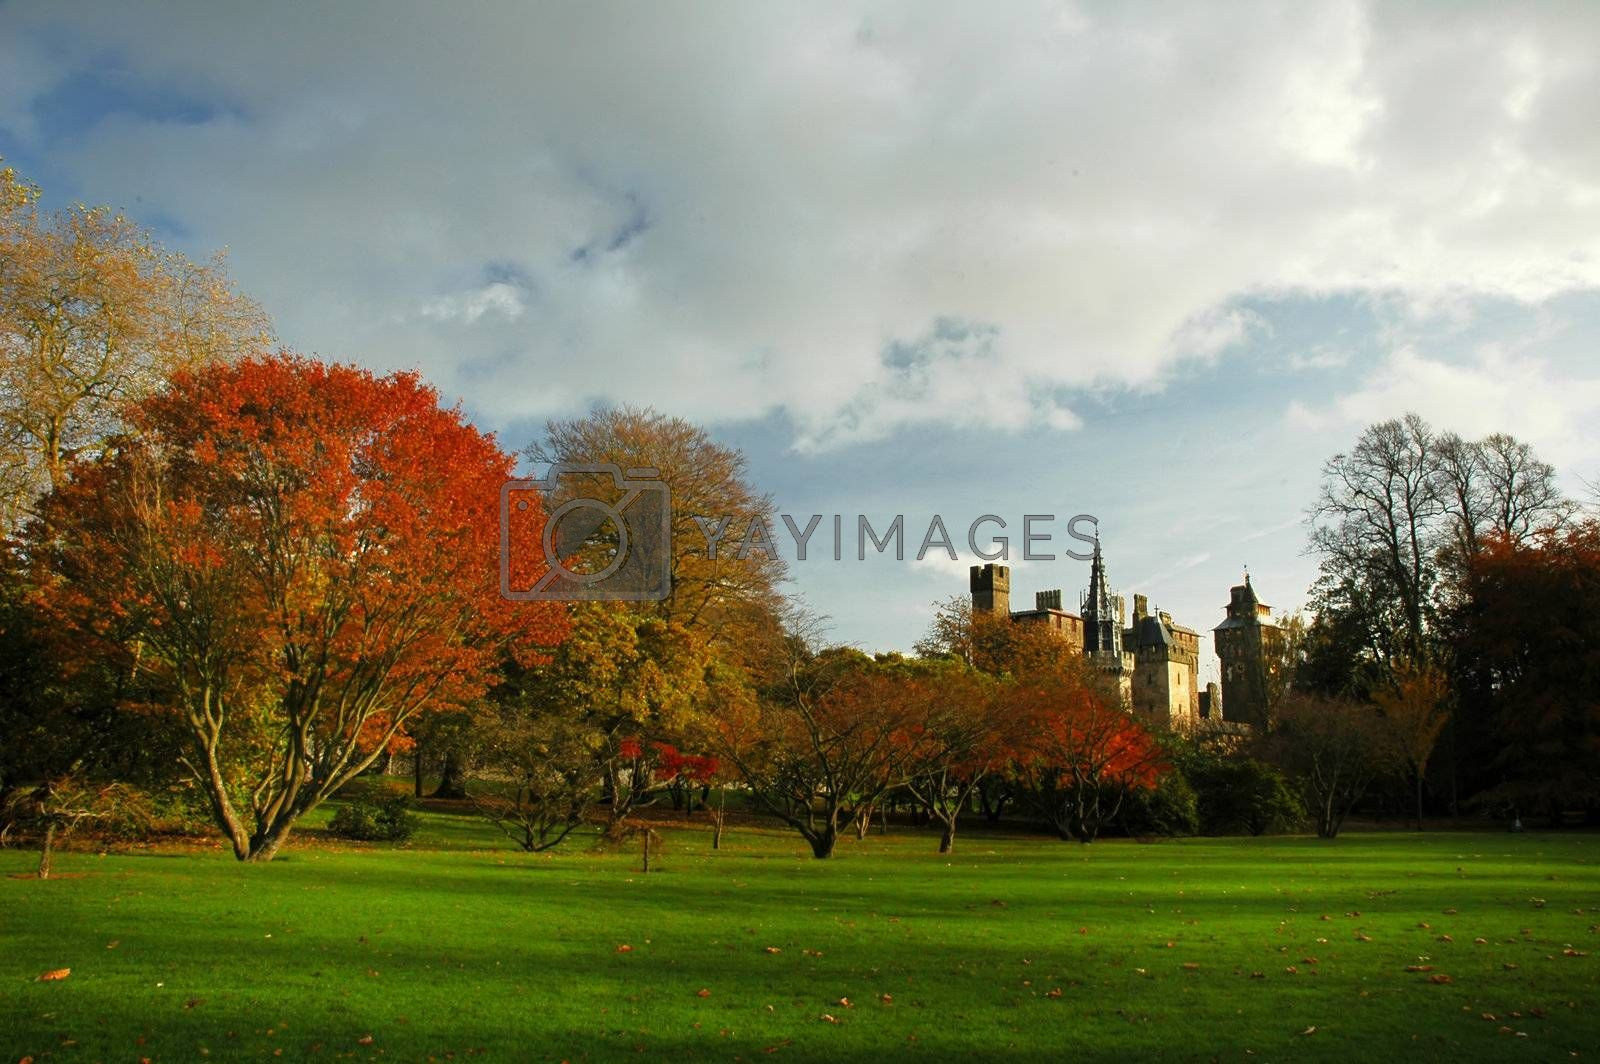 Bute park in cardiff with castle and autumn colours